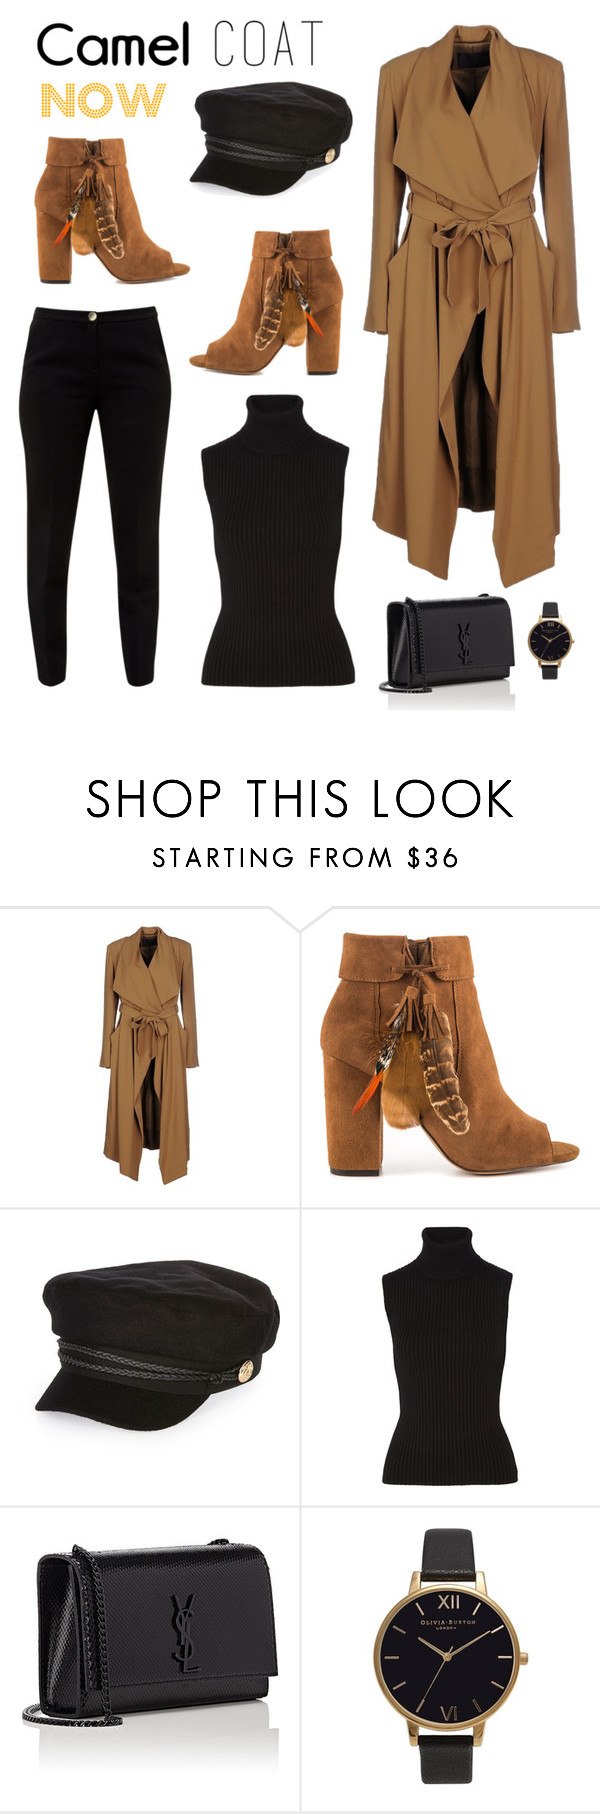 """Autumnal Style"" by lulu13nyc ❤ liked on Polyvore featuring Plein Sud, Jessica Simpson, River Island, Michael Kors, Yves Saint Laurent, Olivia Burton and Ted Baker"